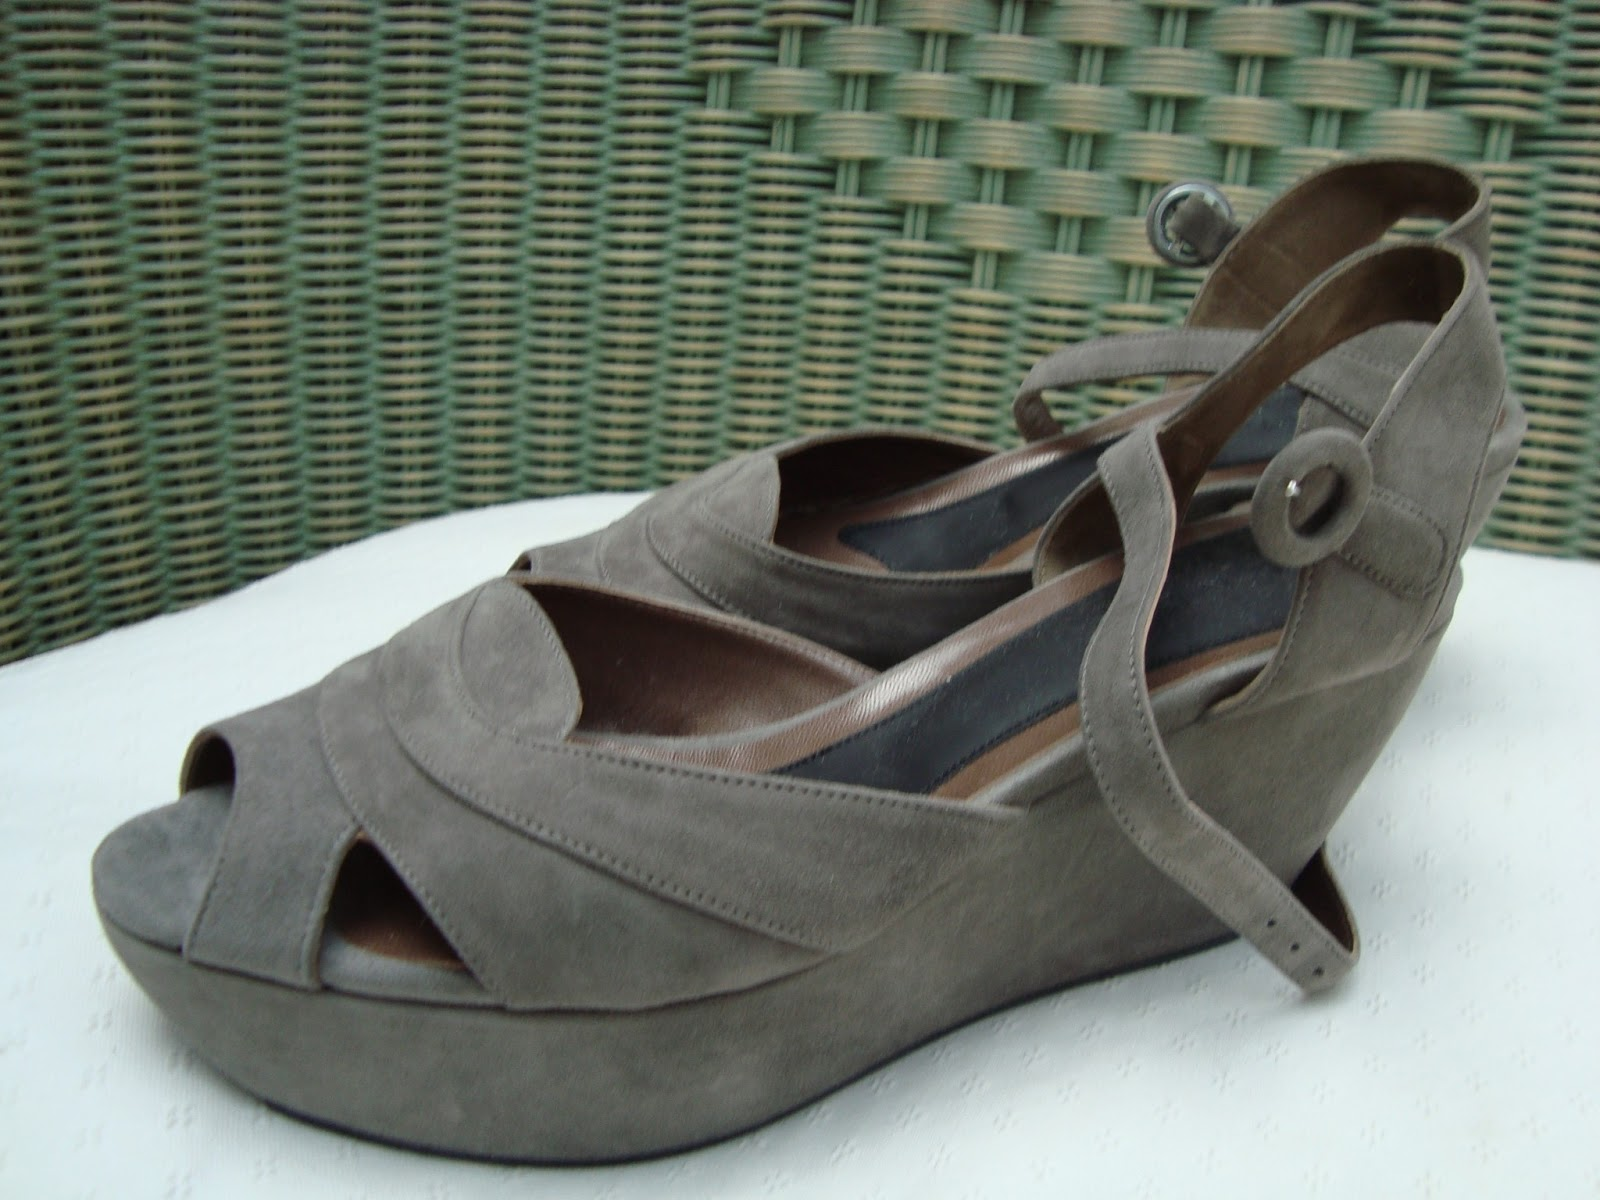 702a827b93502 LSK COLLECTION FOR SALE  MARNI Grey Suede Platform Wedge Sandals Size 40